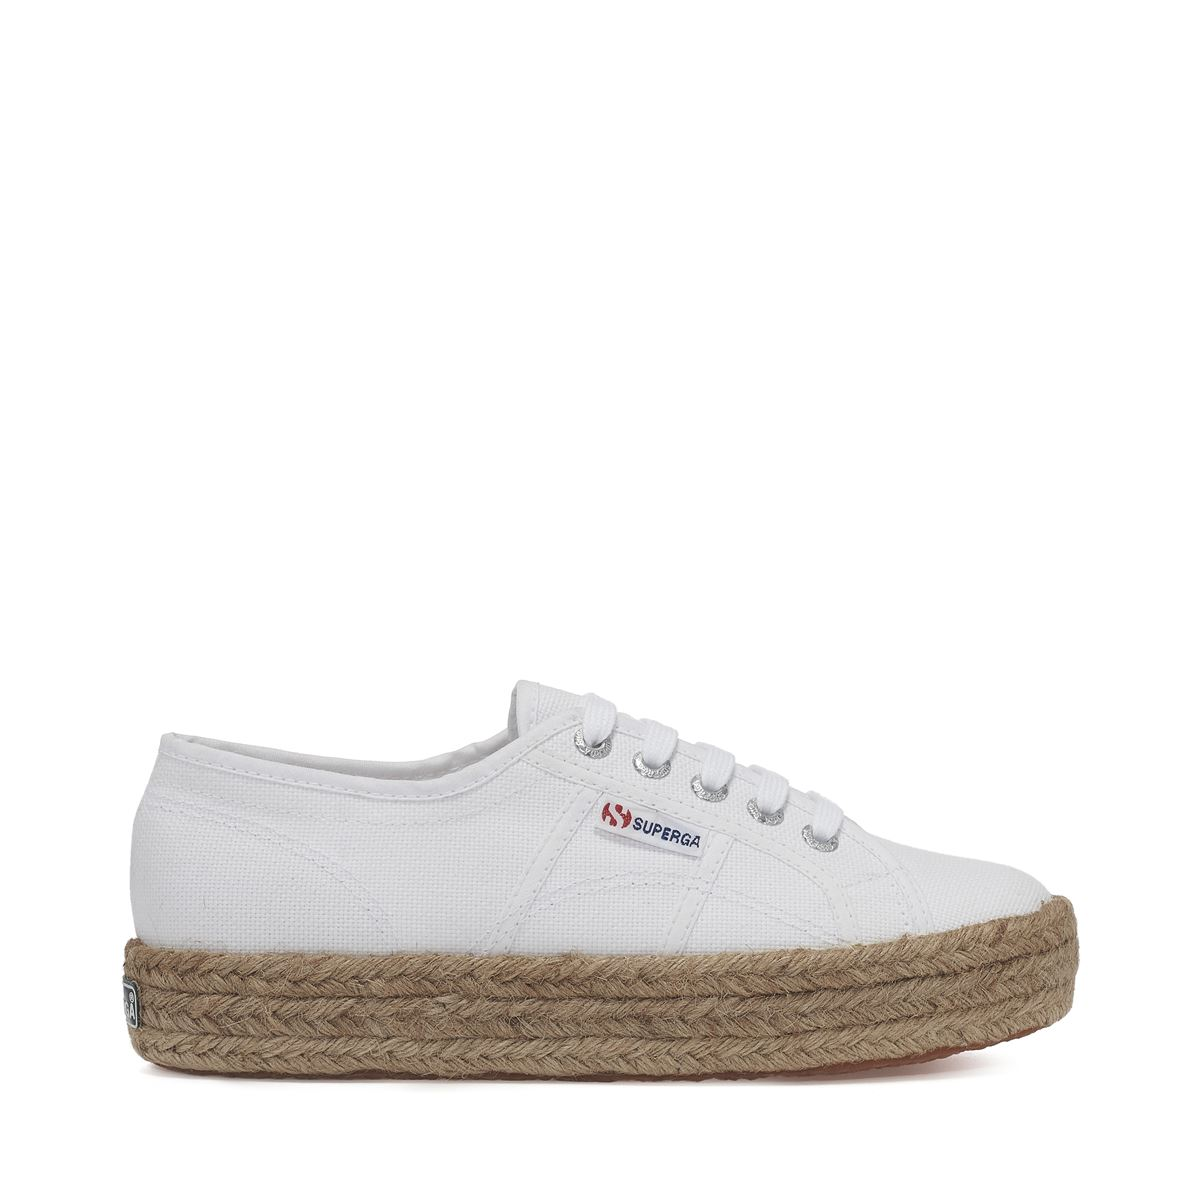 Superga Lady Shoes 2730-COTROPEW Woman CASUAL Wedge